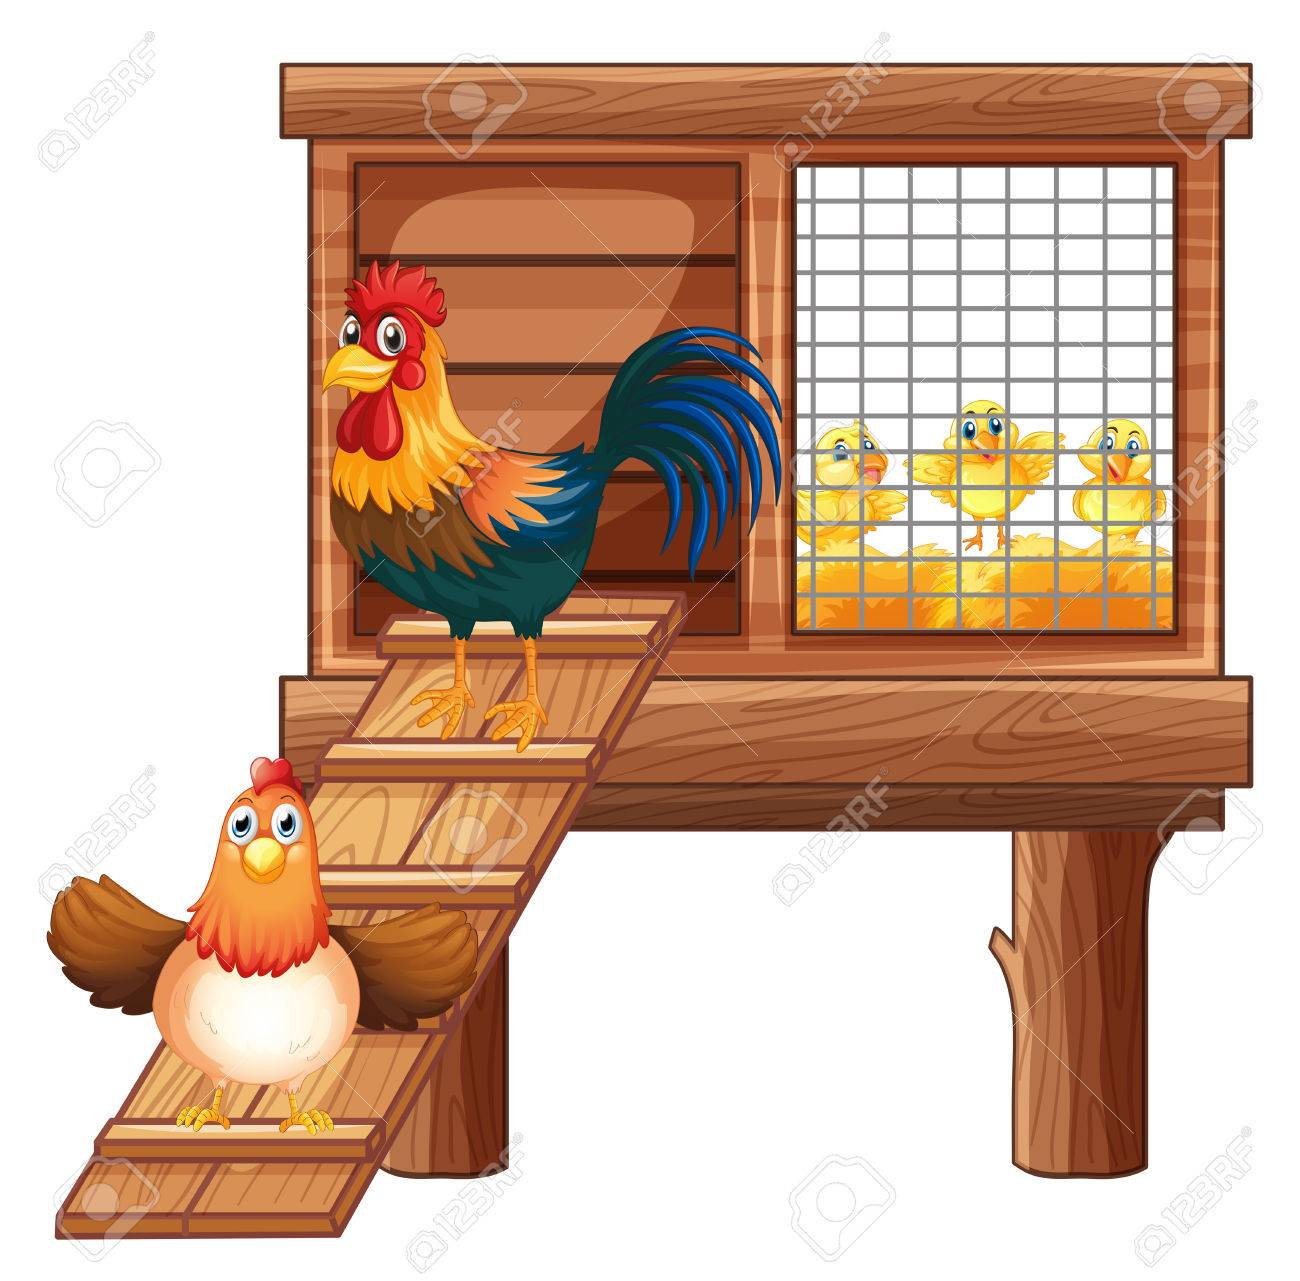 Chicken and chicks in coop illustration.